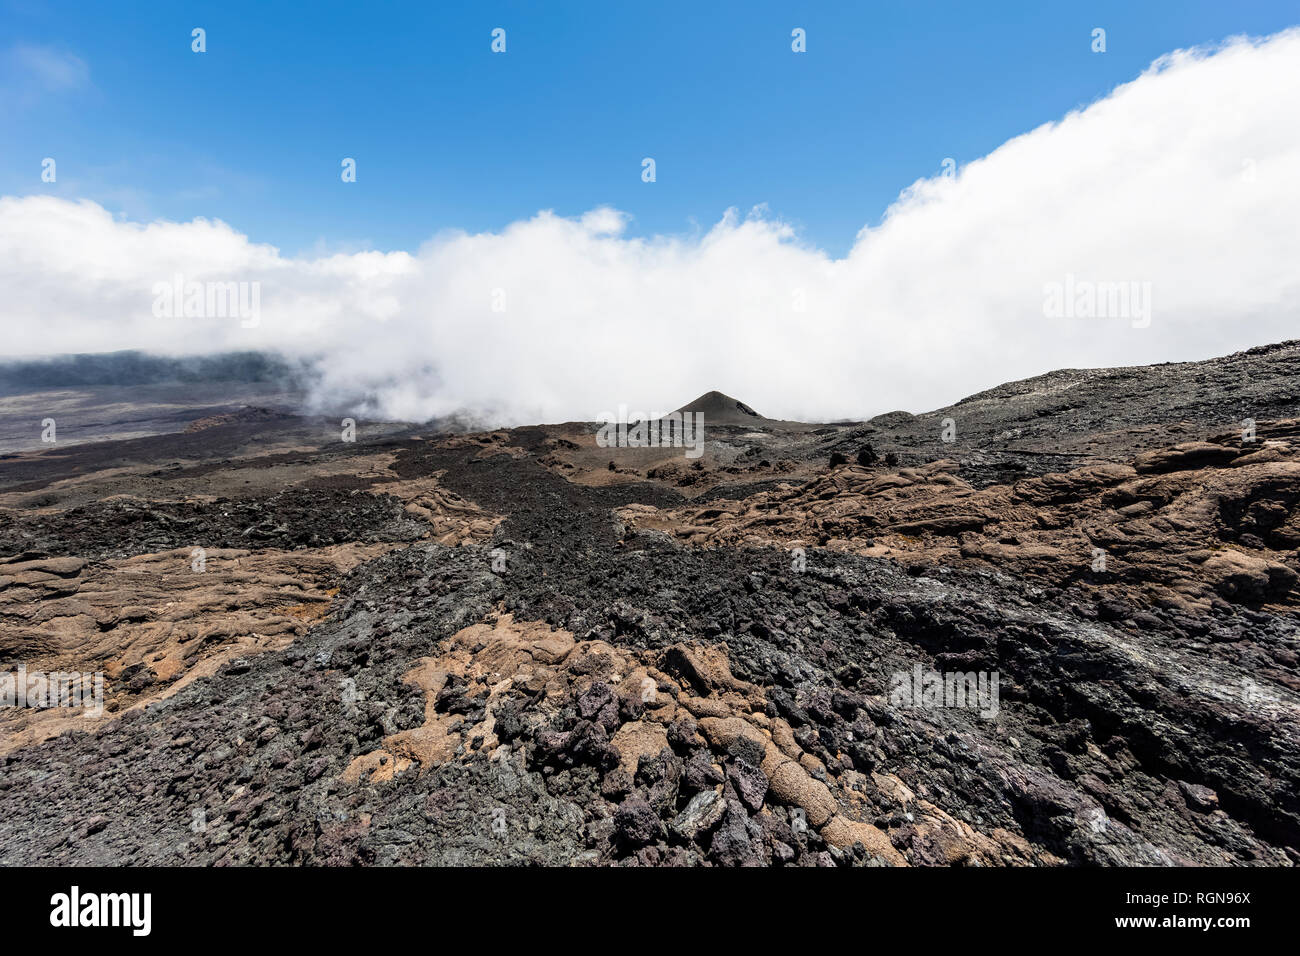 Reunion, Reunion National Park, Shield Volcano Piton de la Fournaise, Caldera Enclos Fouque and Rempart, lava field, AA lava over pahoehoe lava - Stock Image